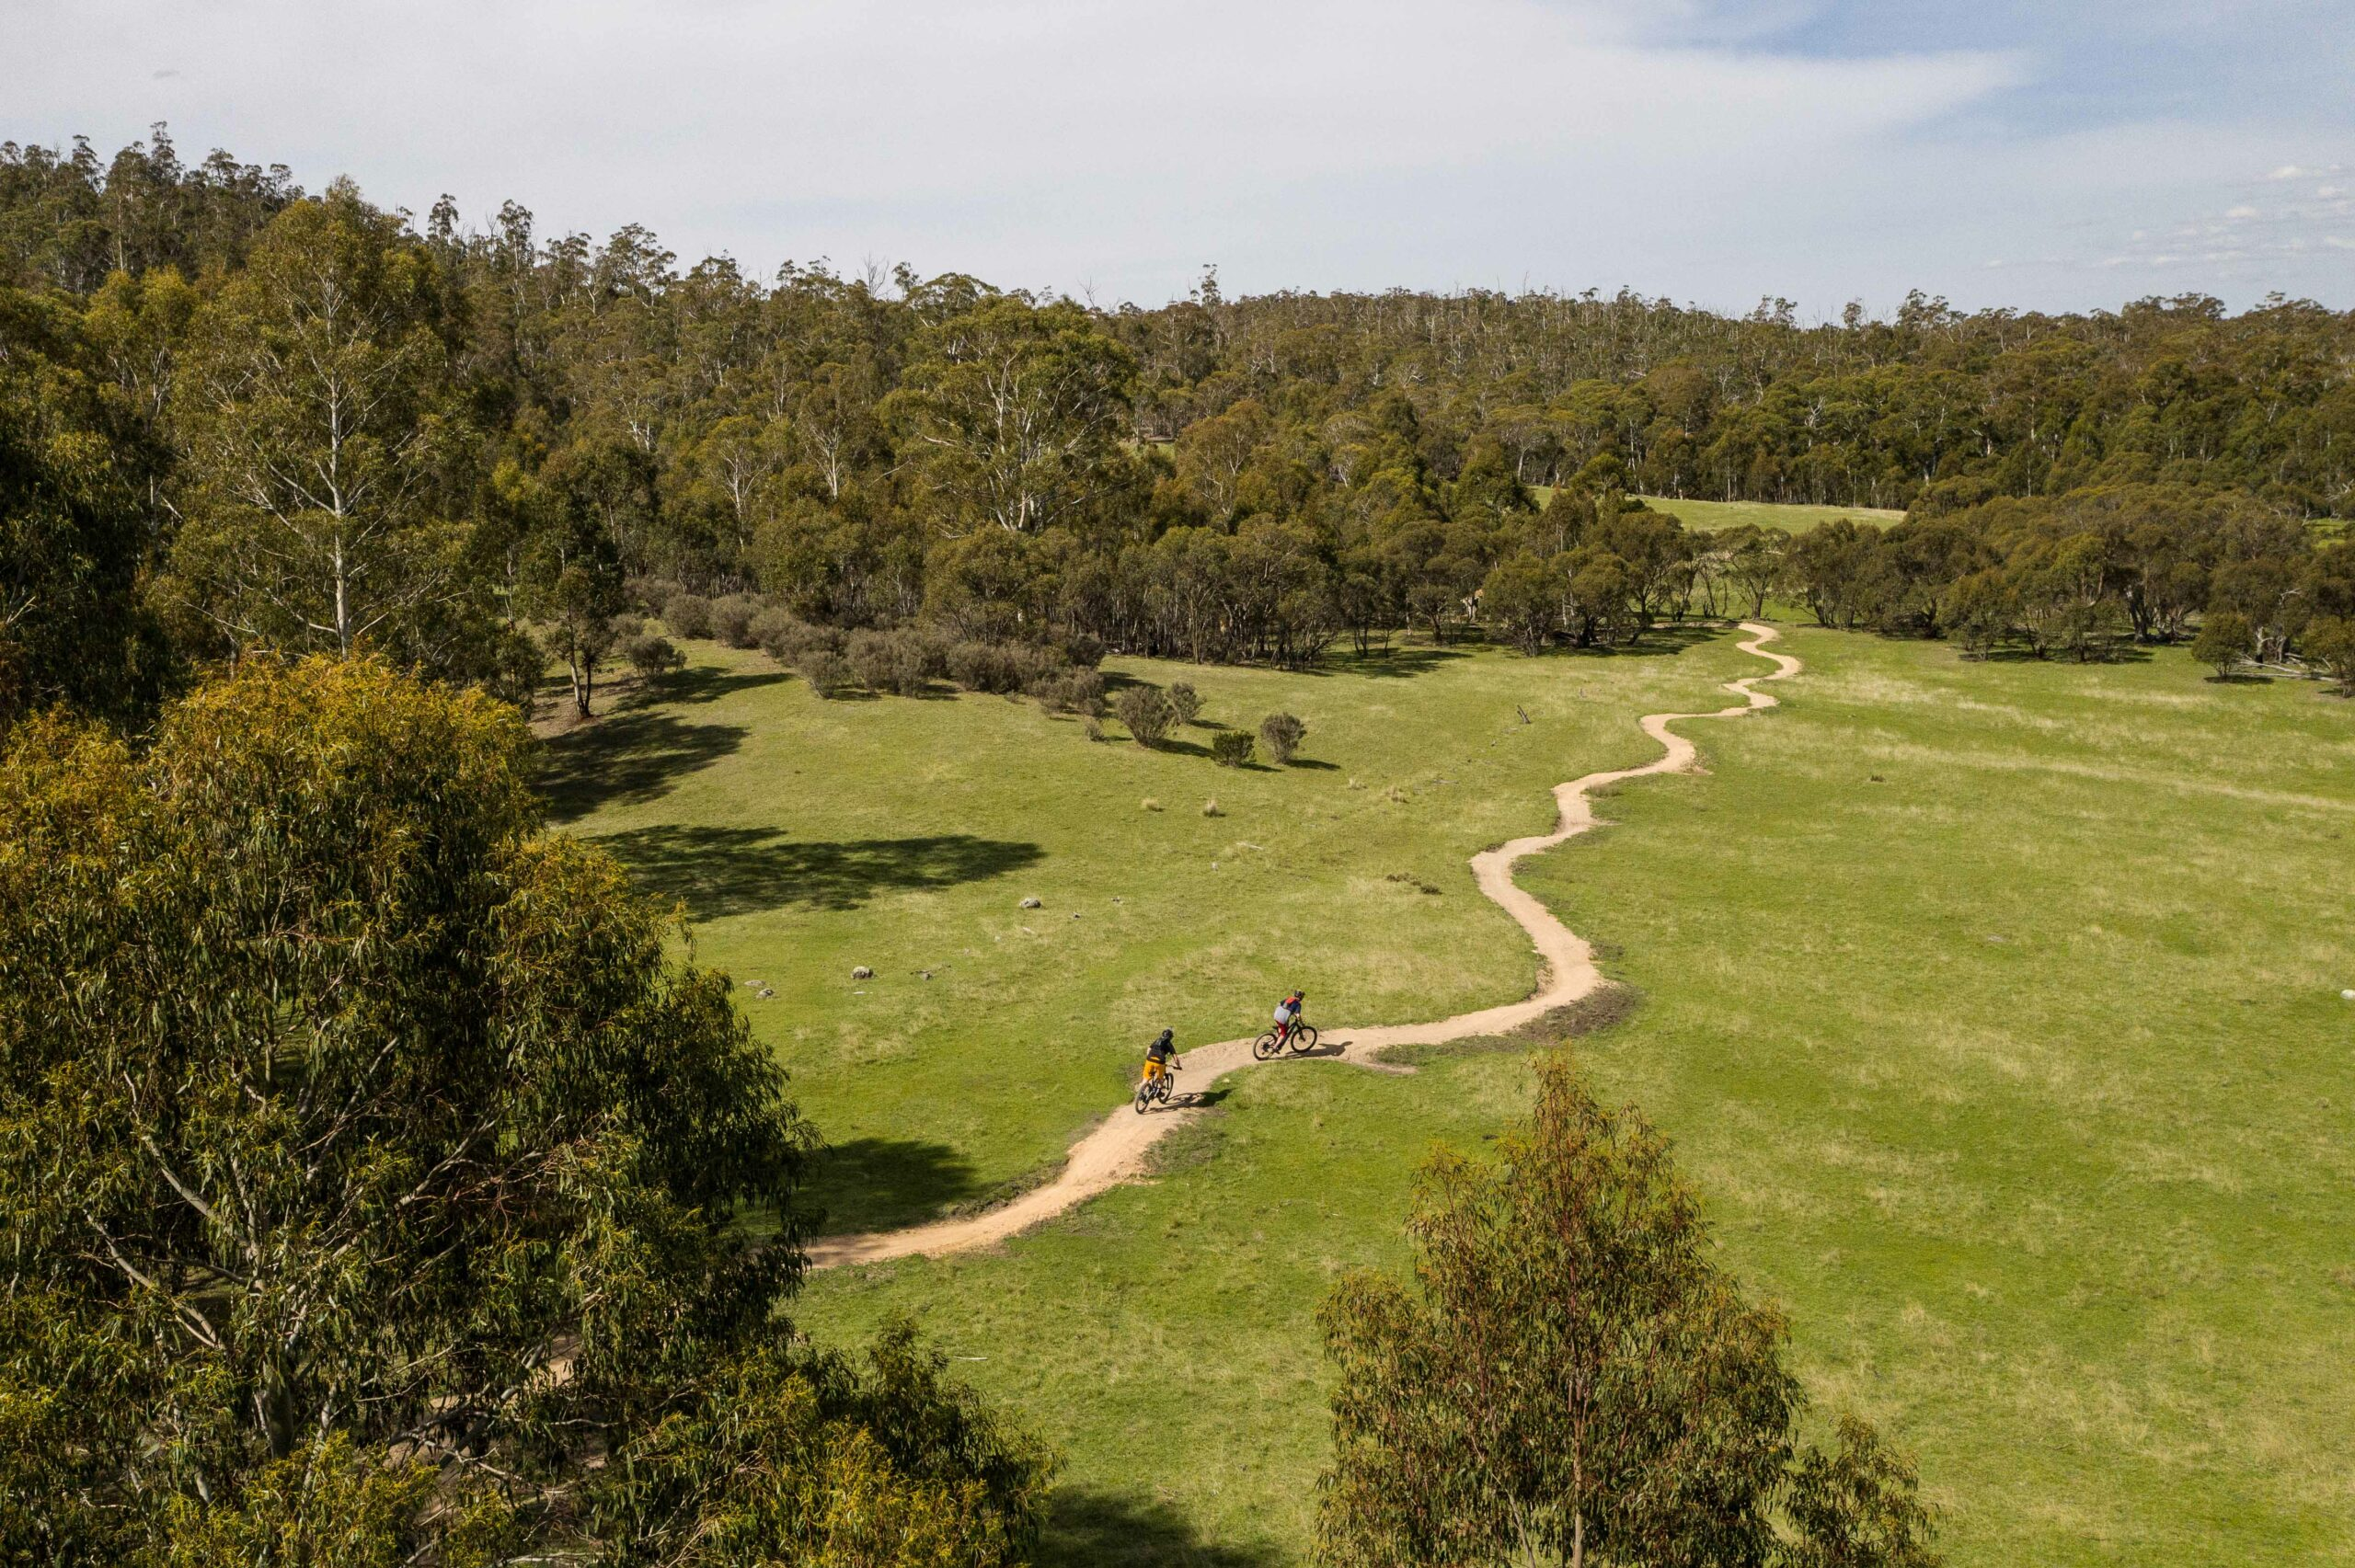 The Thredbo Valley Track is Known for Being Fun and Flowy